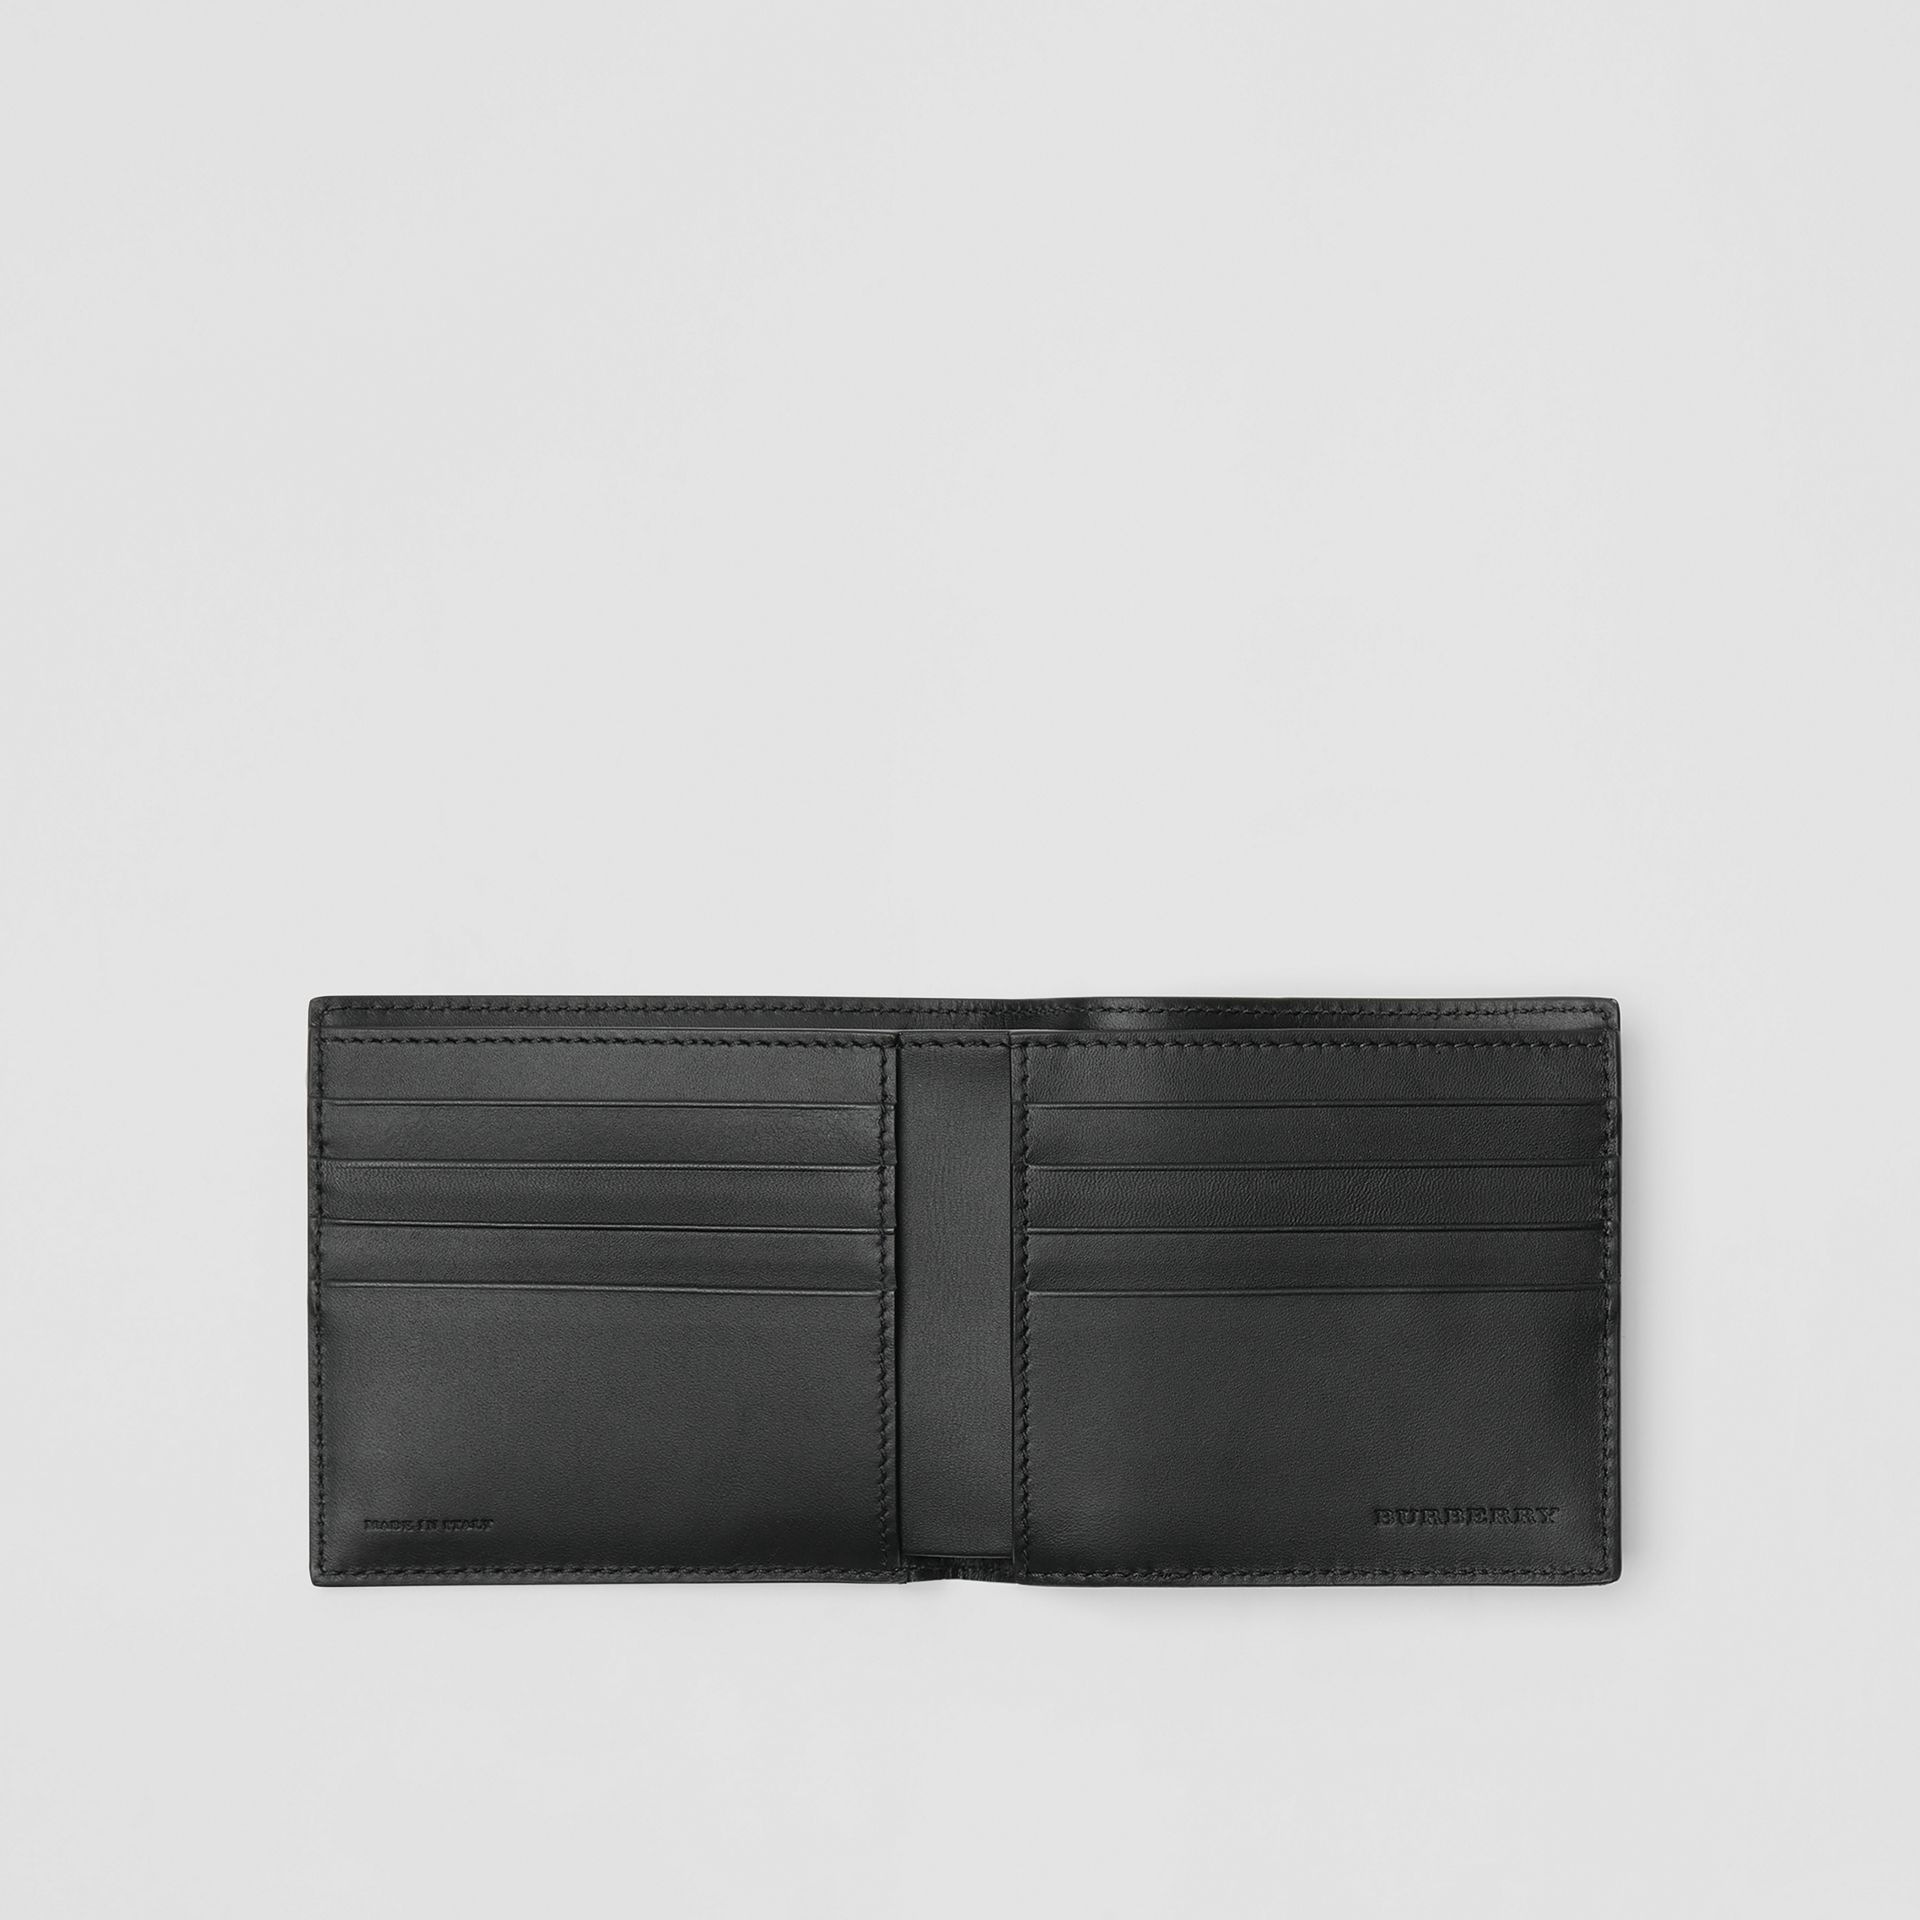 London Leather International Bifold Wallet in Navy - Men | Burberry - gallery image 2